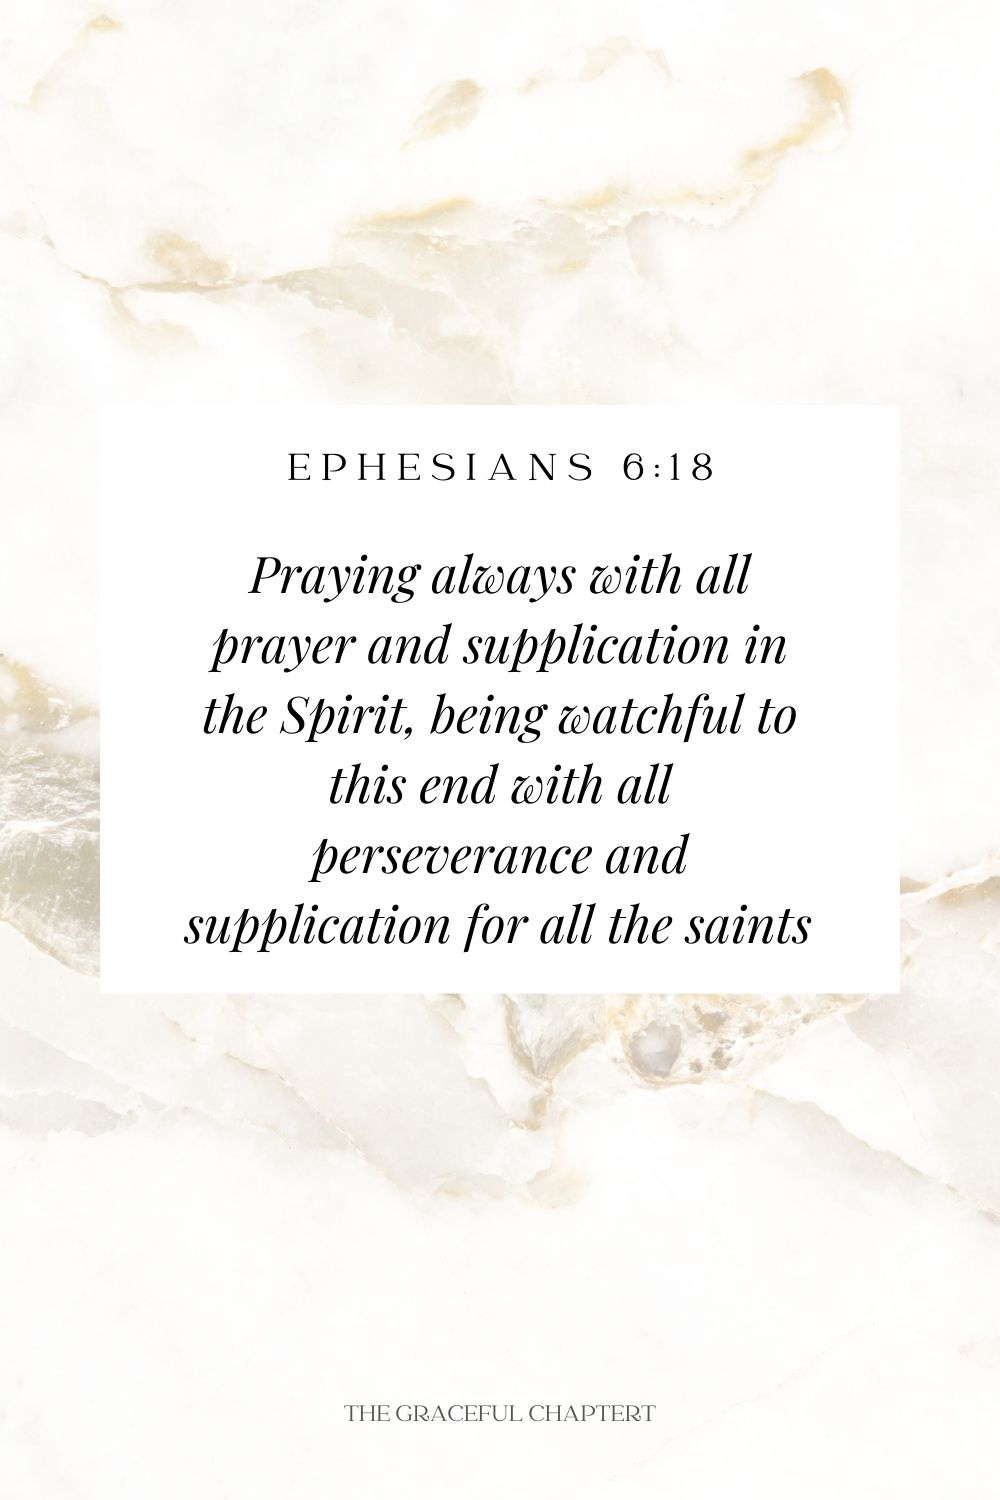 Praying always with all prayer and supplication in the Spirit, being watchful to this end with all perseverance and supplication for all the saints  Ephesians 6:18